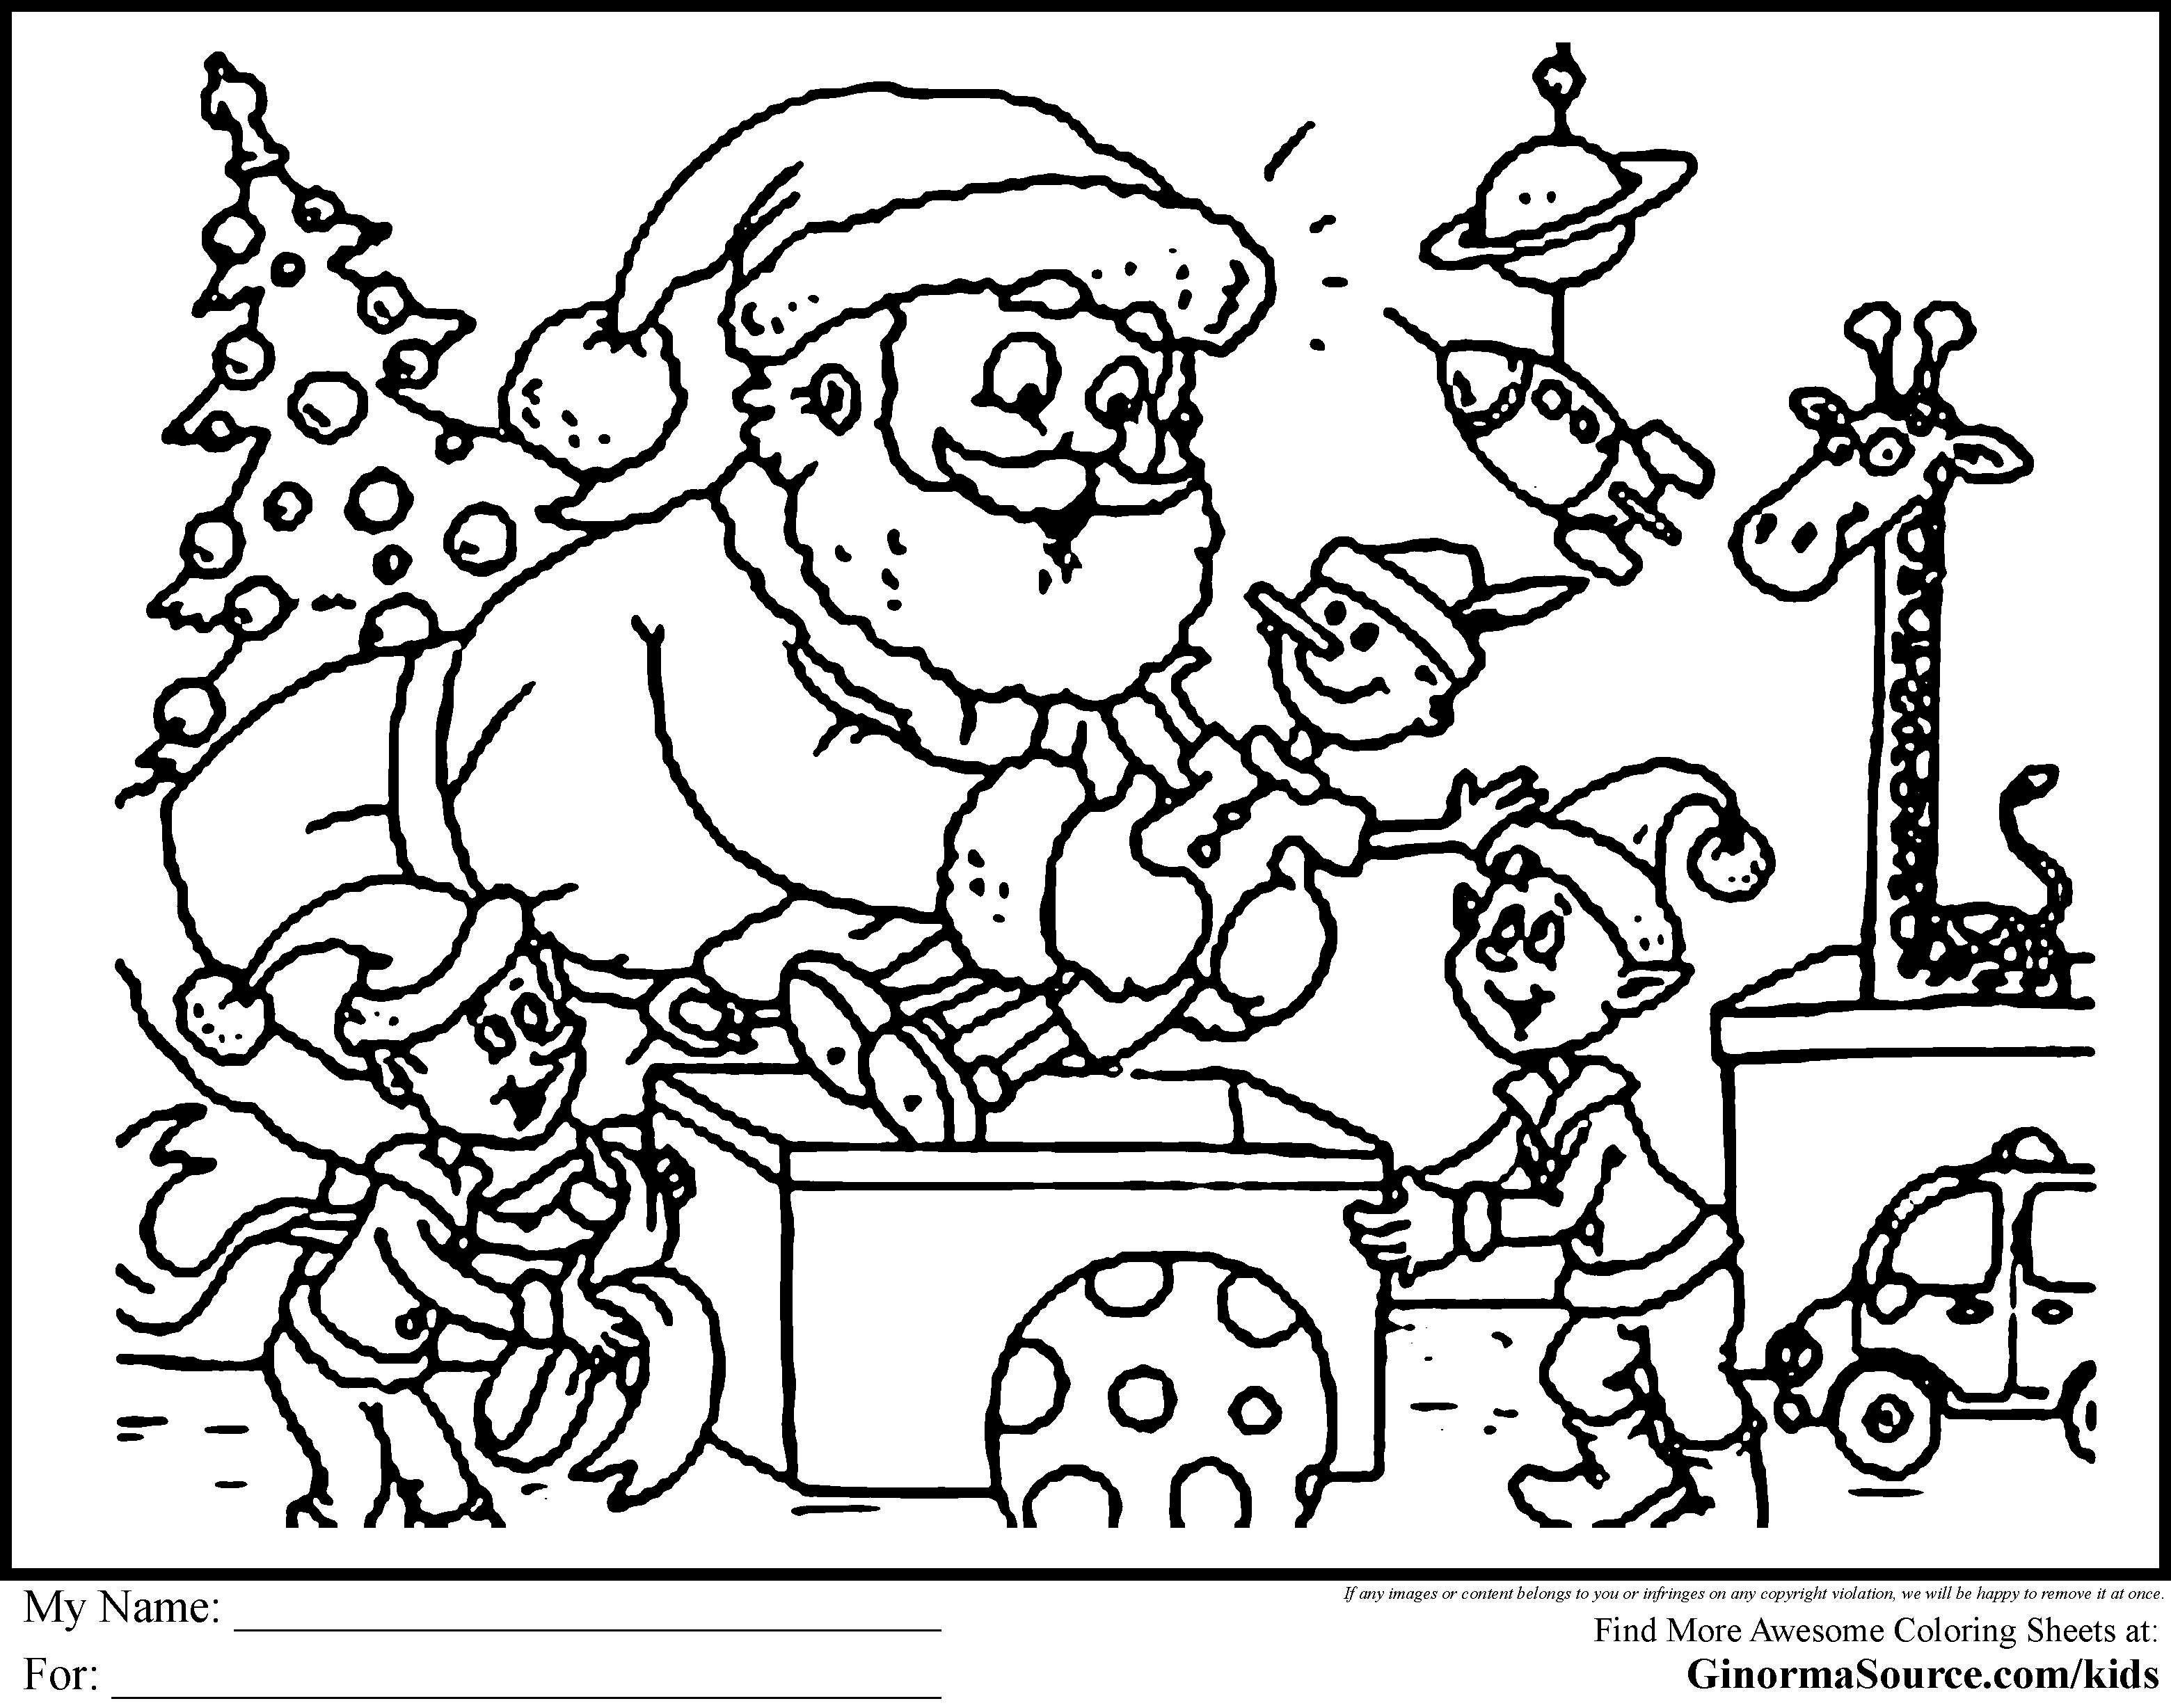 Christmas Color Pages For Kids Merry Christmas Image Best Of Christmas Coloring Pages For Kids